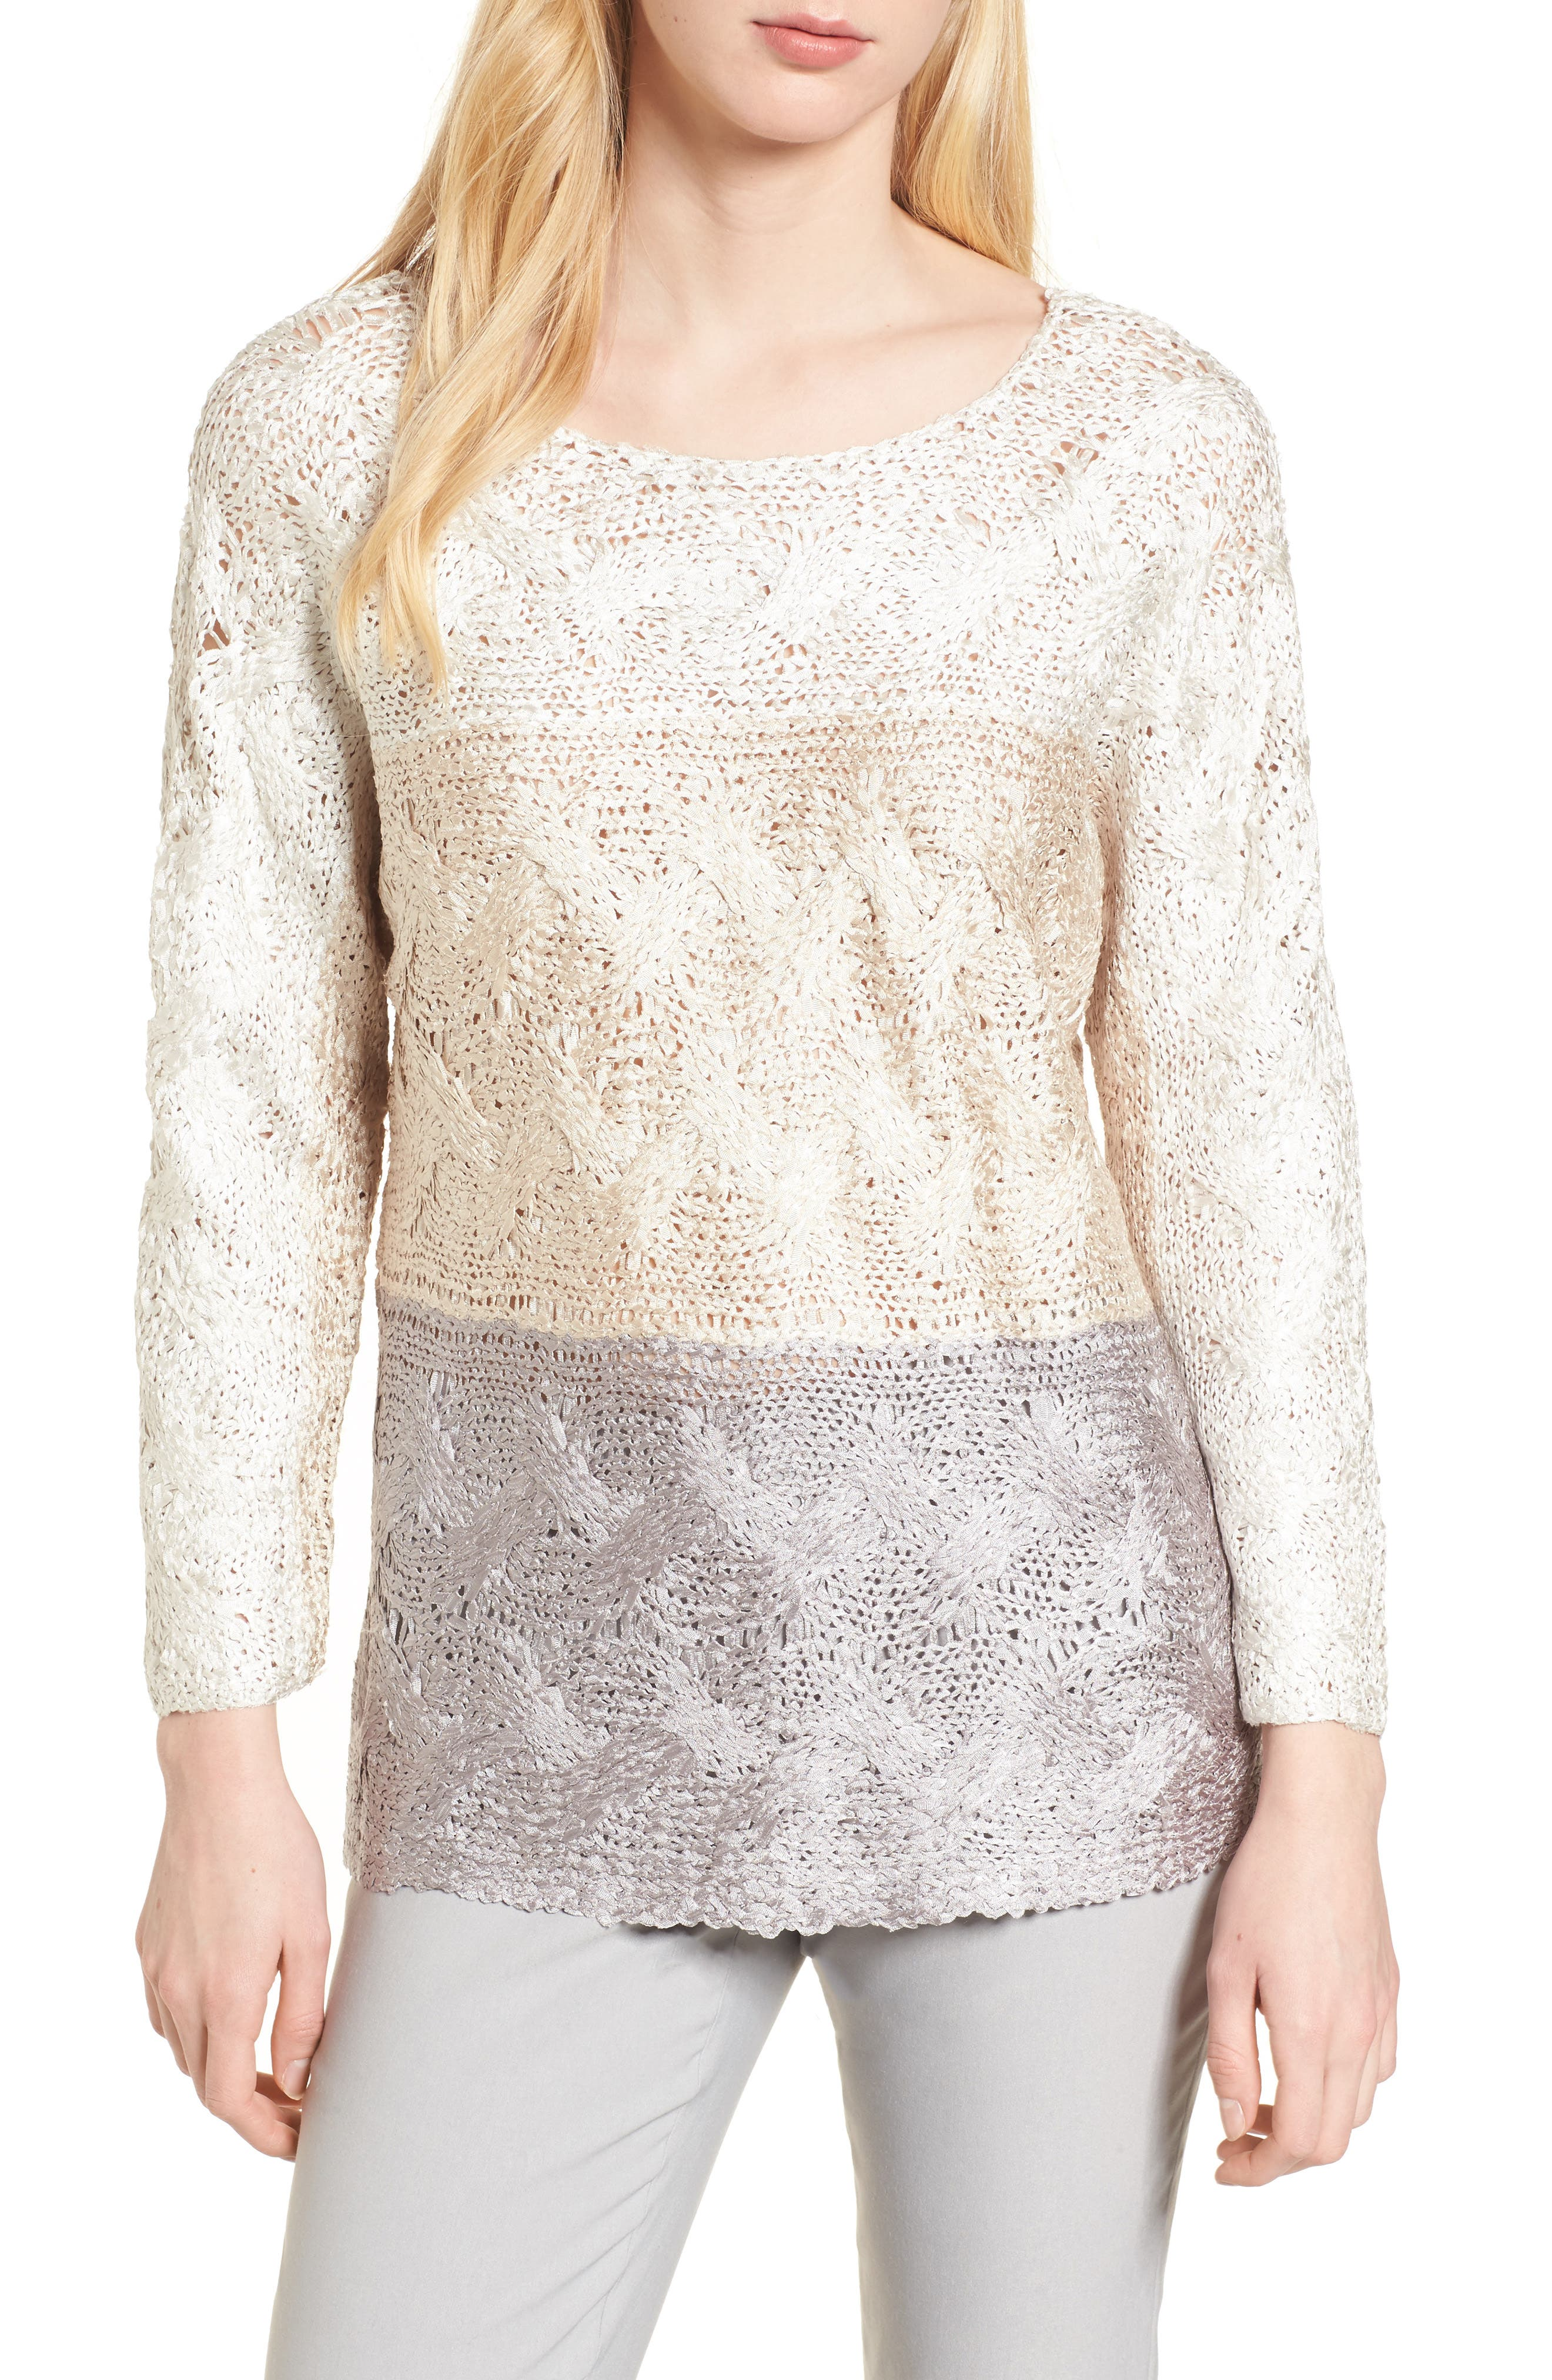 Daydreamer Ombré Sweater,                             Main thumbnail 1, color,                             290